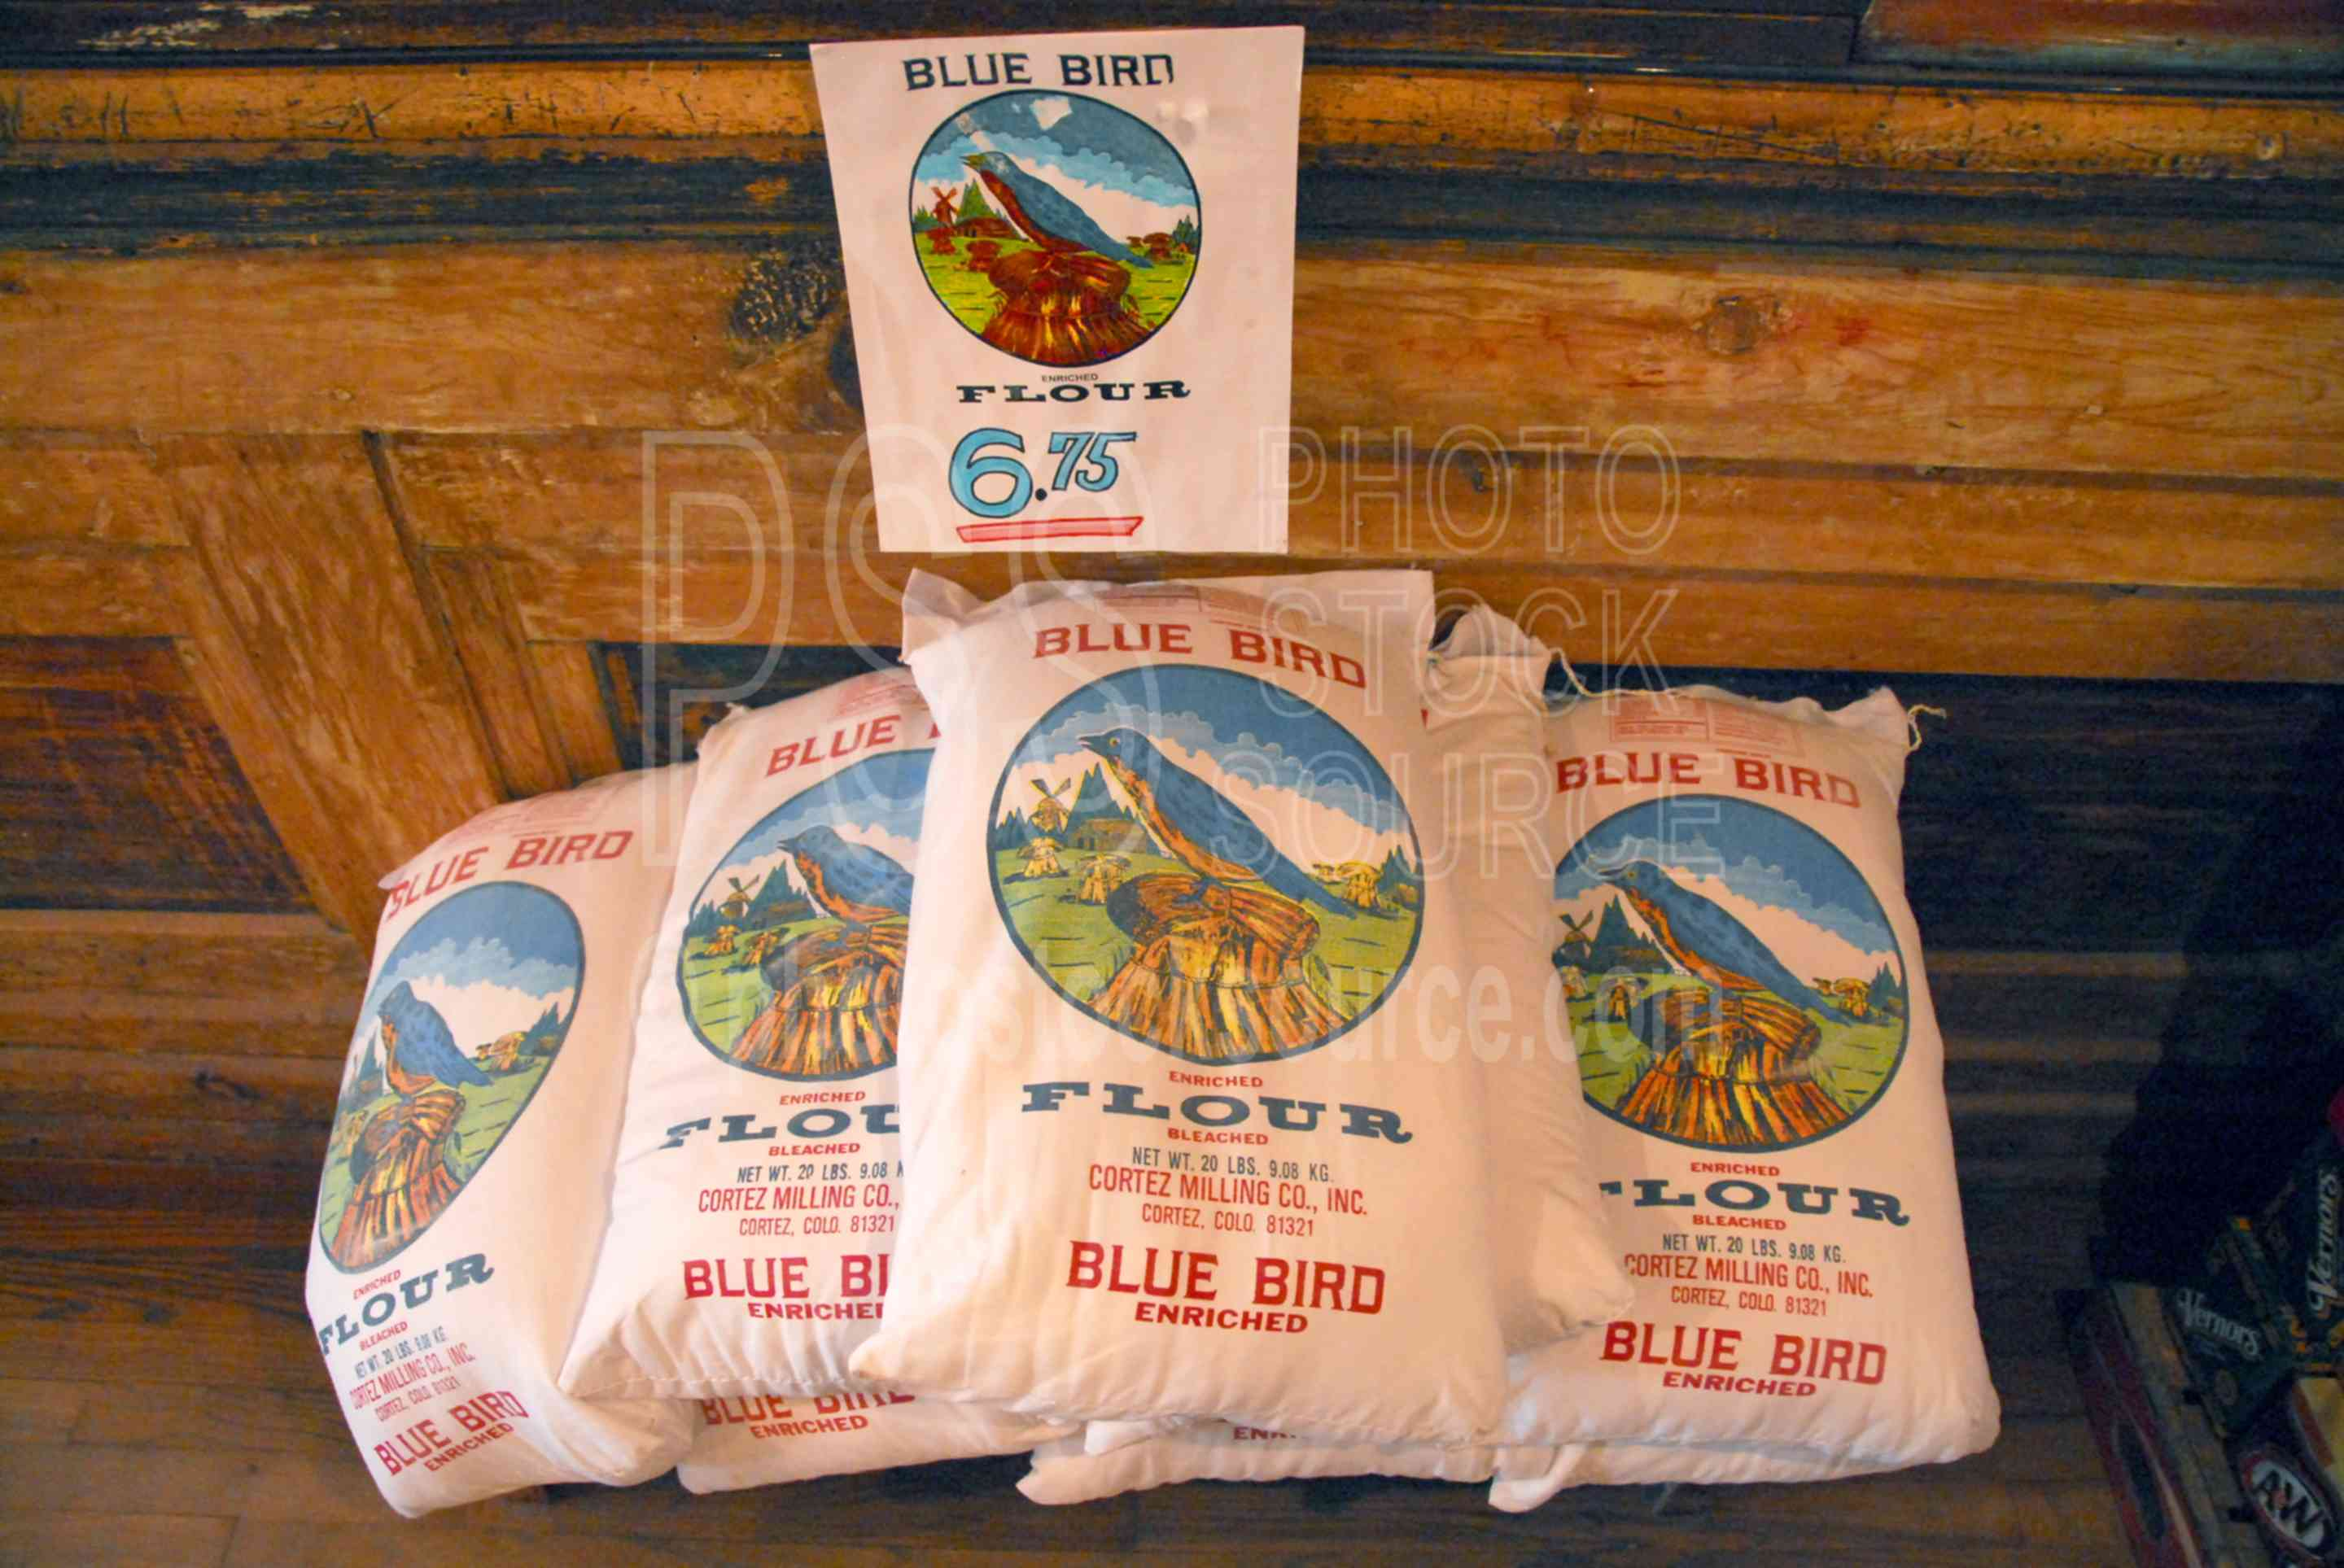 Hubbell Trading Post,dry goods,general store,merchantile,store,trading post,hubbell trading post,flour